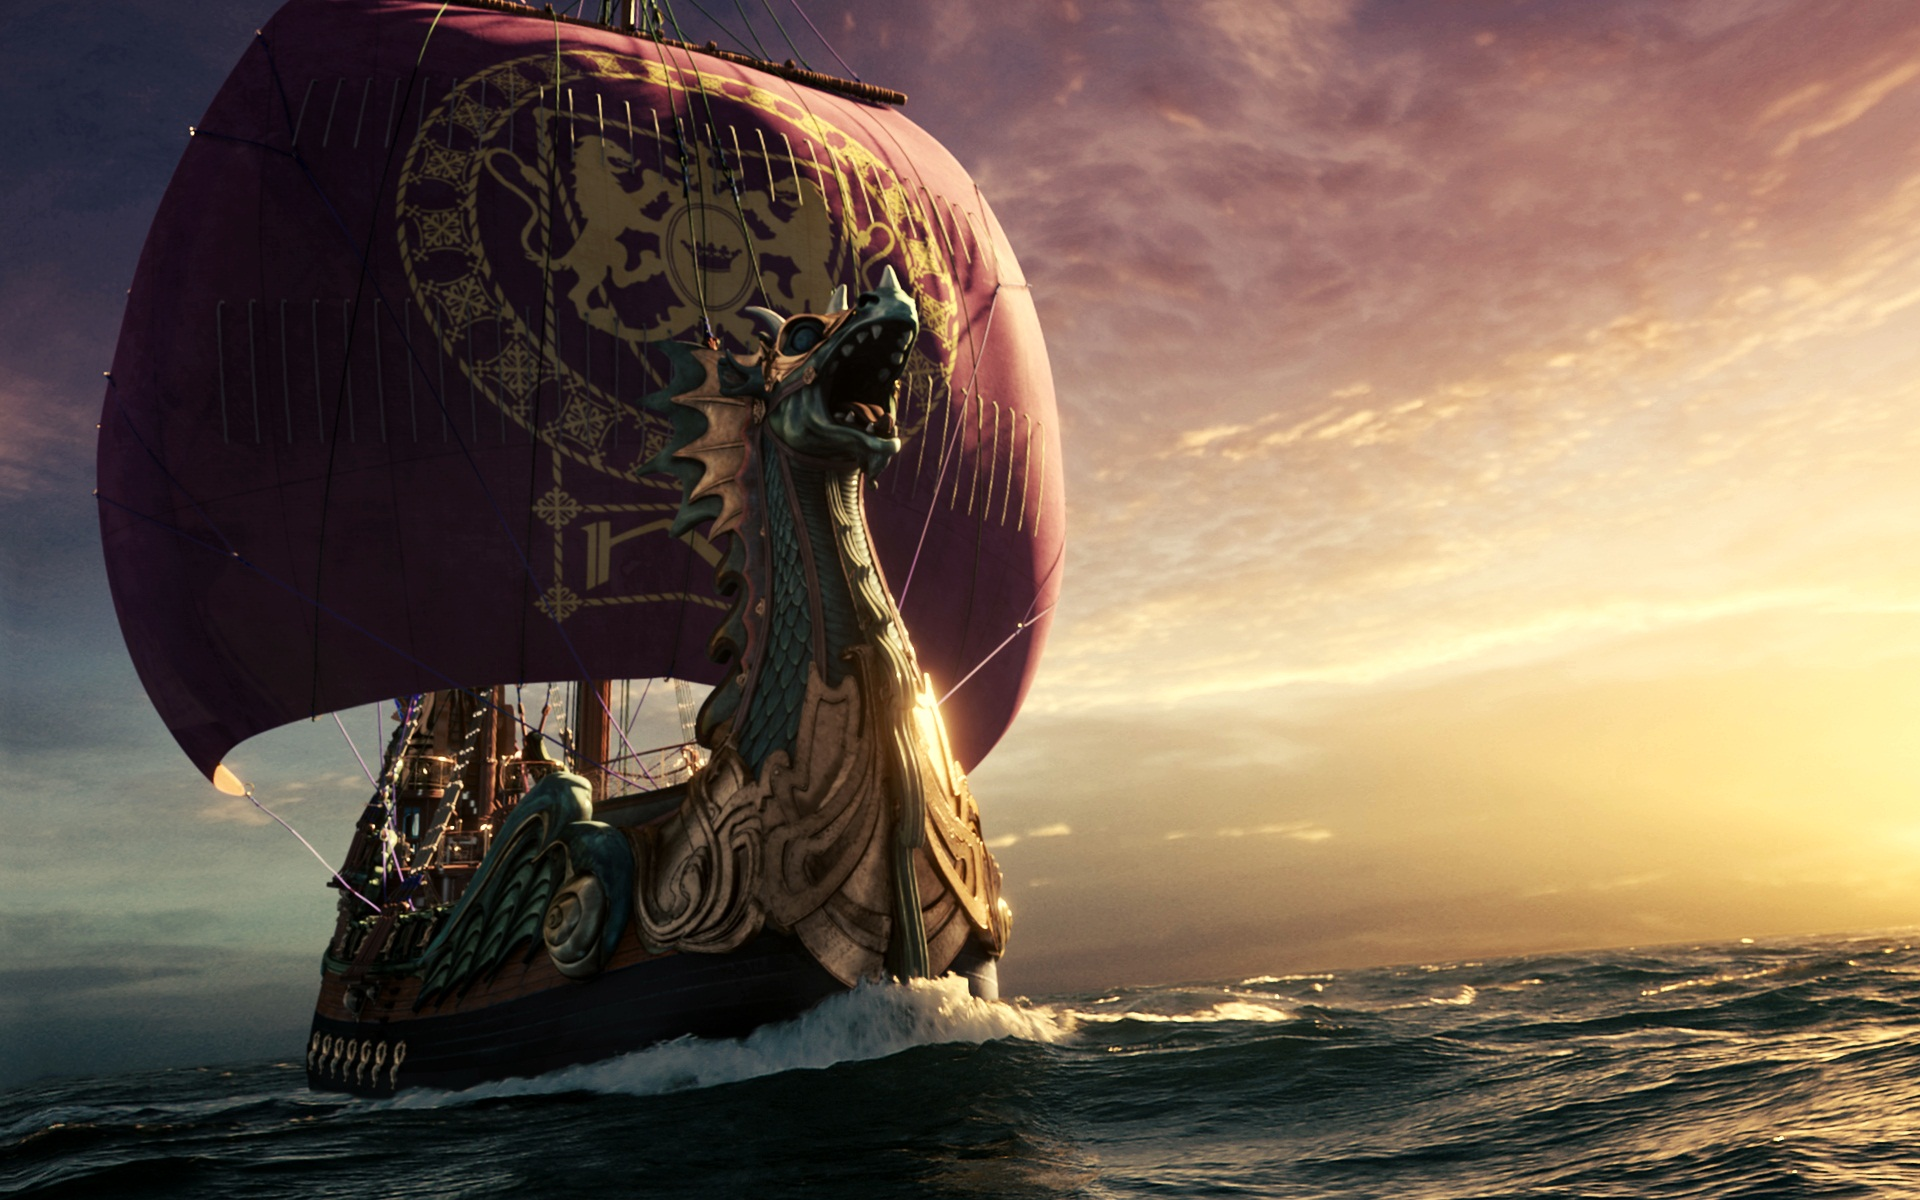 Narnia Dawn Treader Ship 281.41 Kb